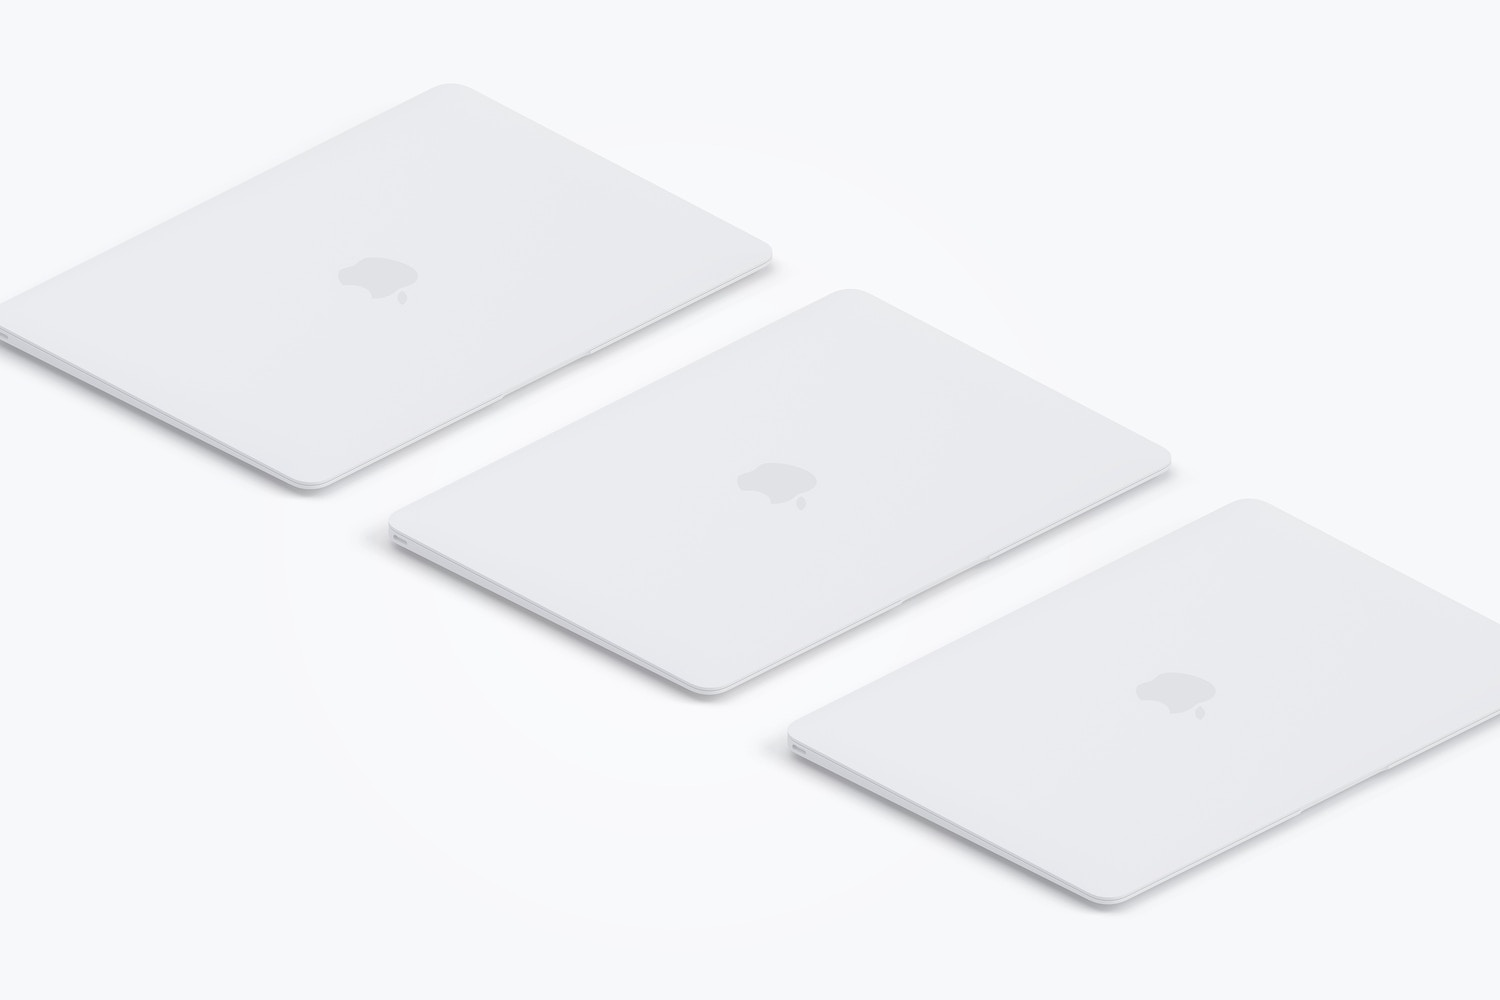 Clay MacBook Mockup, Isometric Right View 02 (3) by Original Mockups on Original Mockups